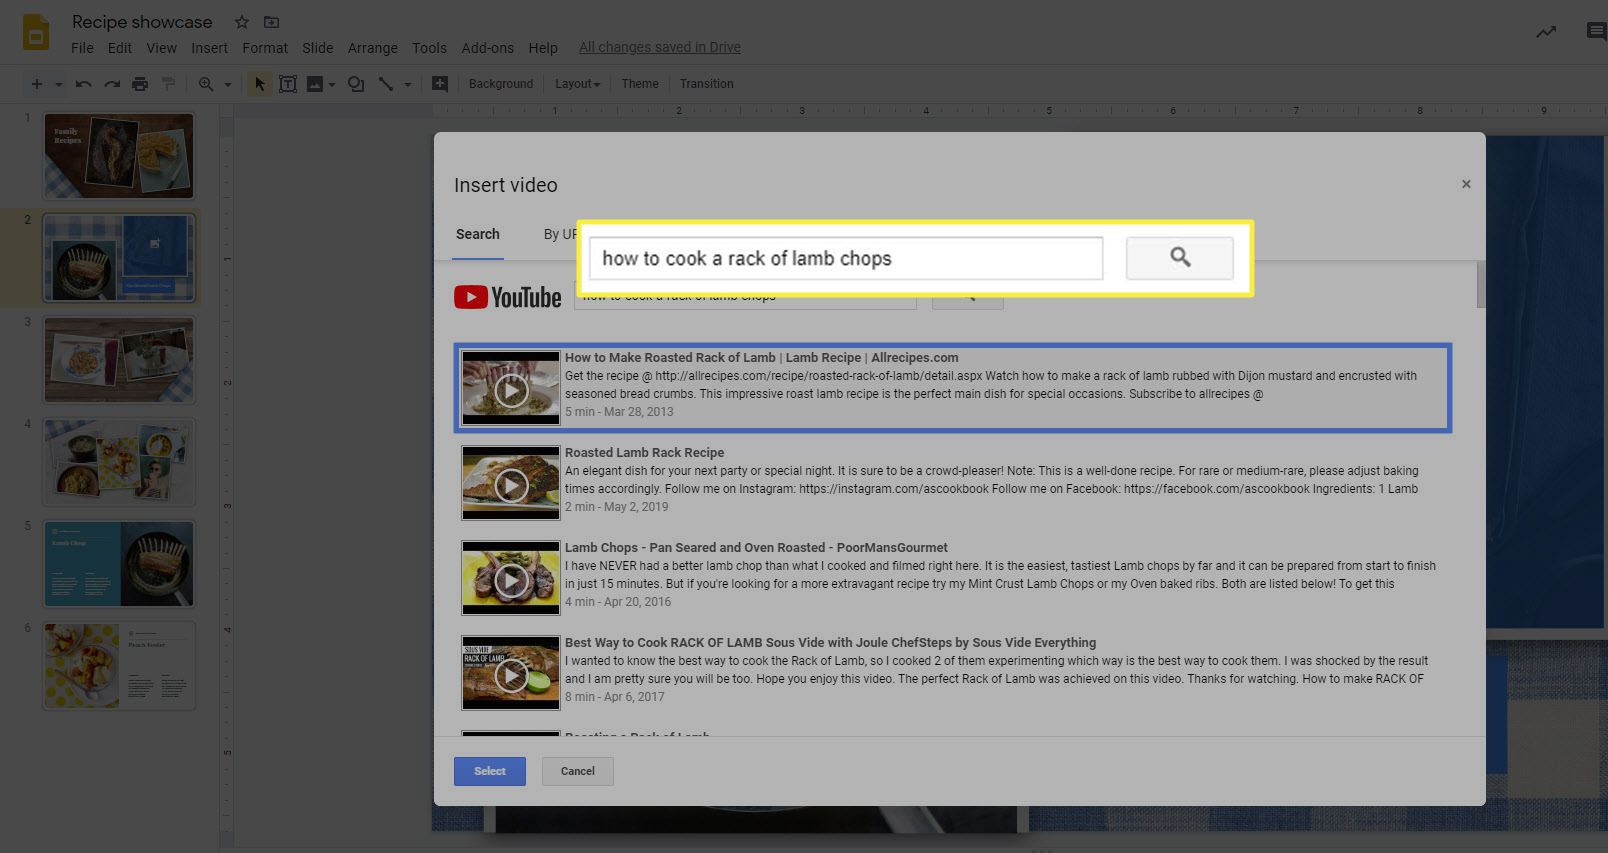 The YouTube search box when adding a video to Google Slides.